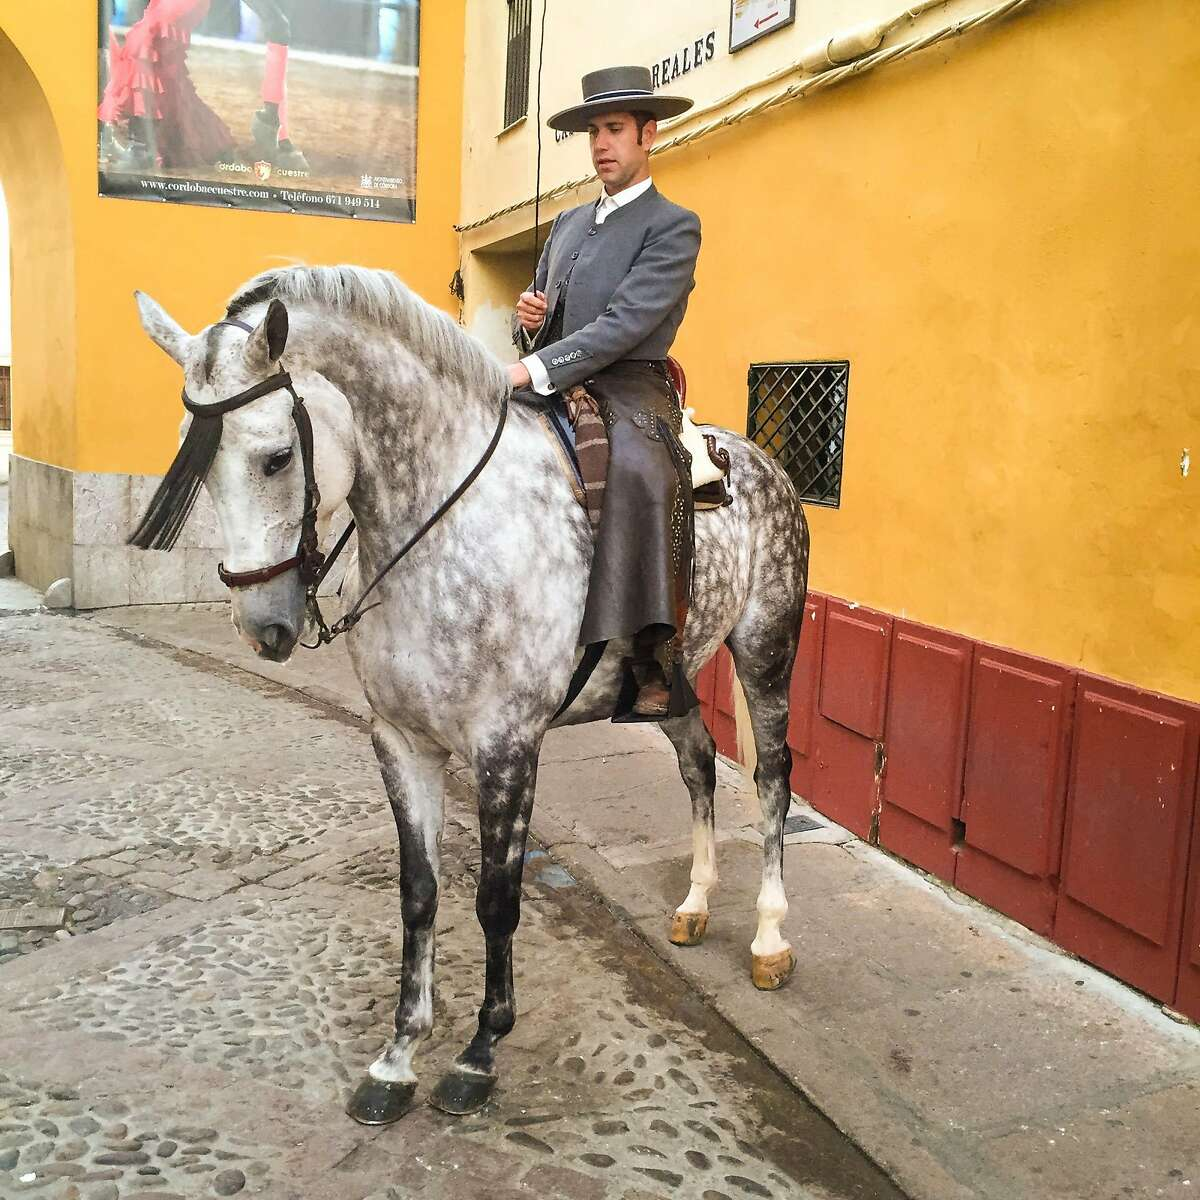 The Spanish horse known as the Andalusian horse is of Arab origin, and was originally bred in C�rdoba.